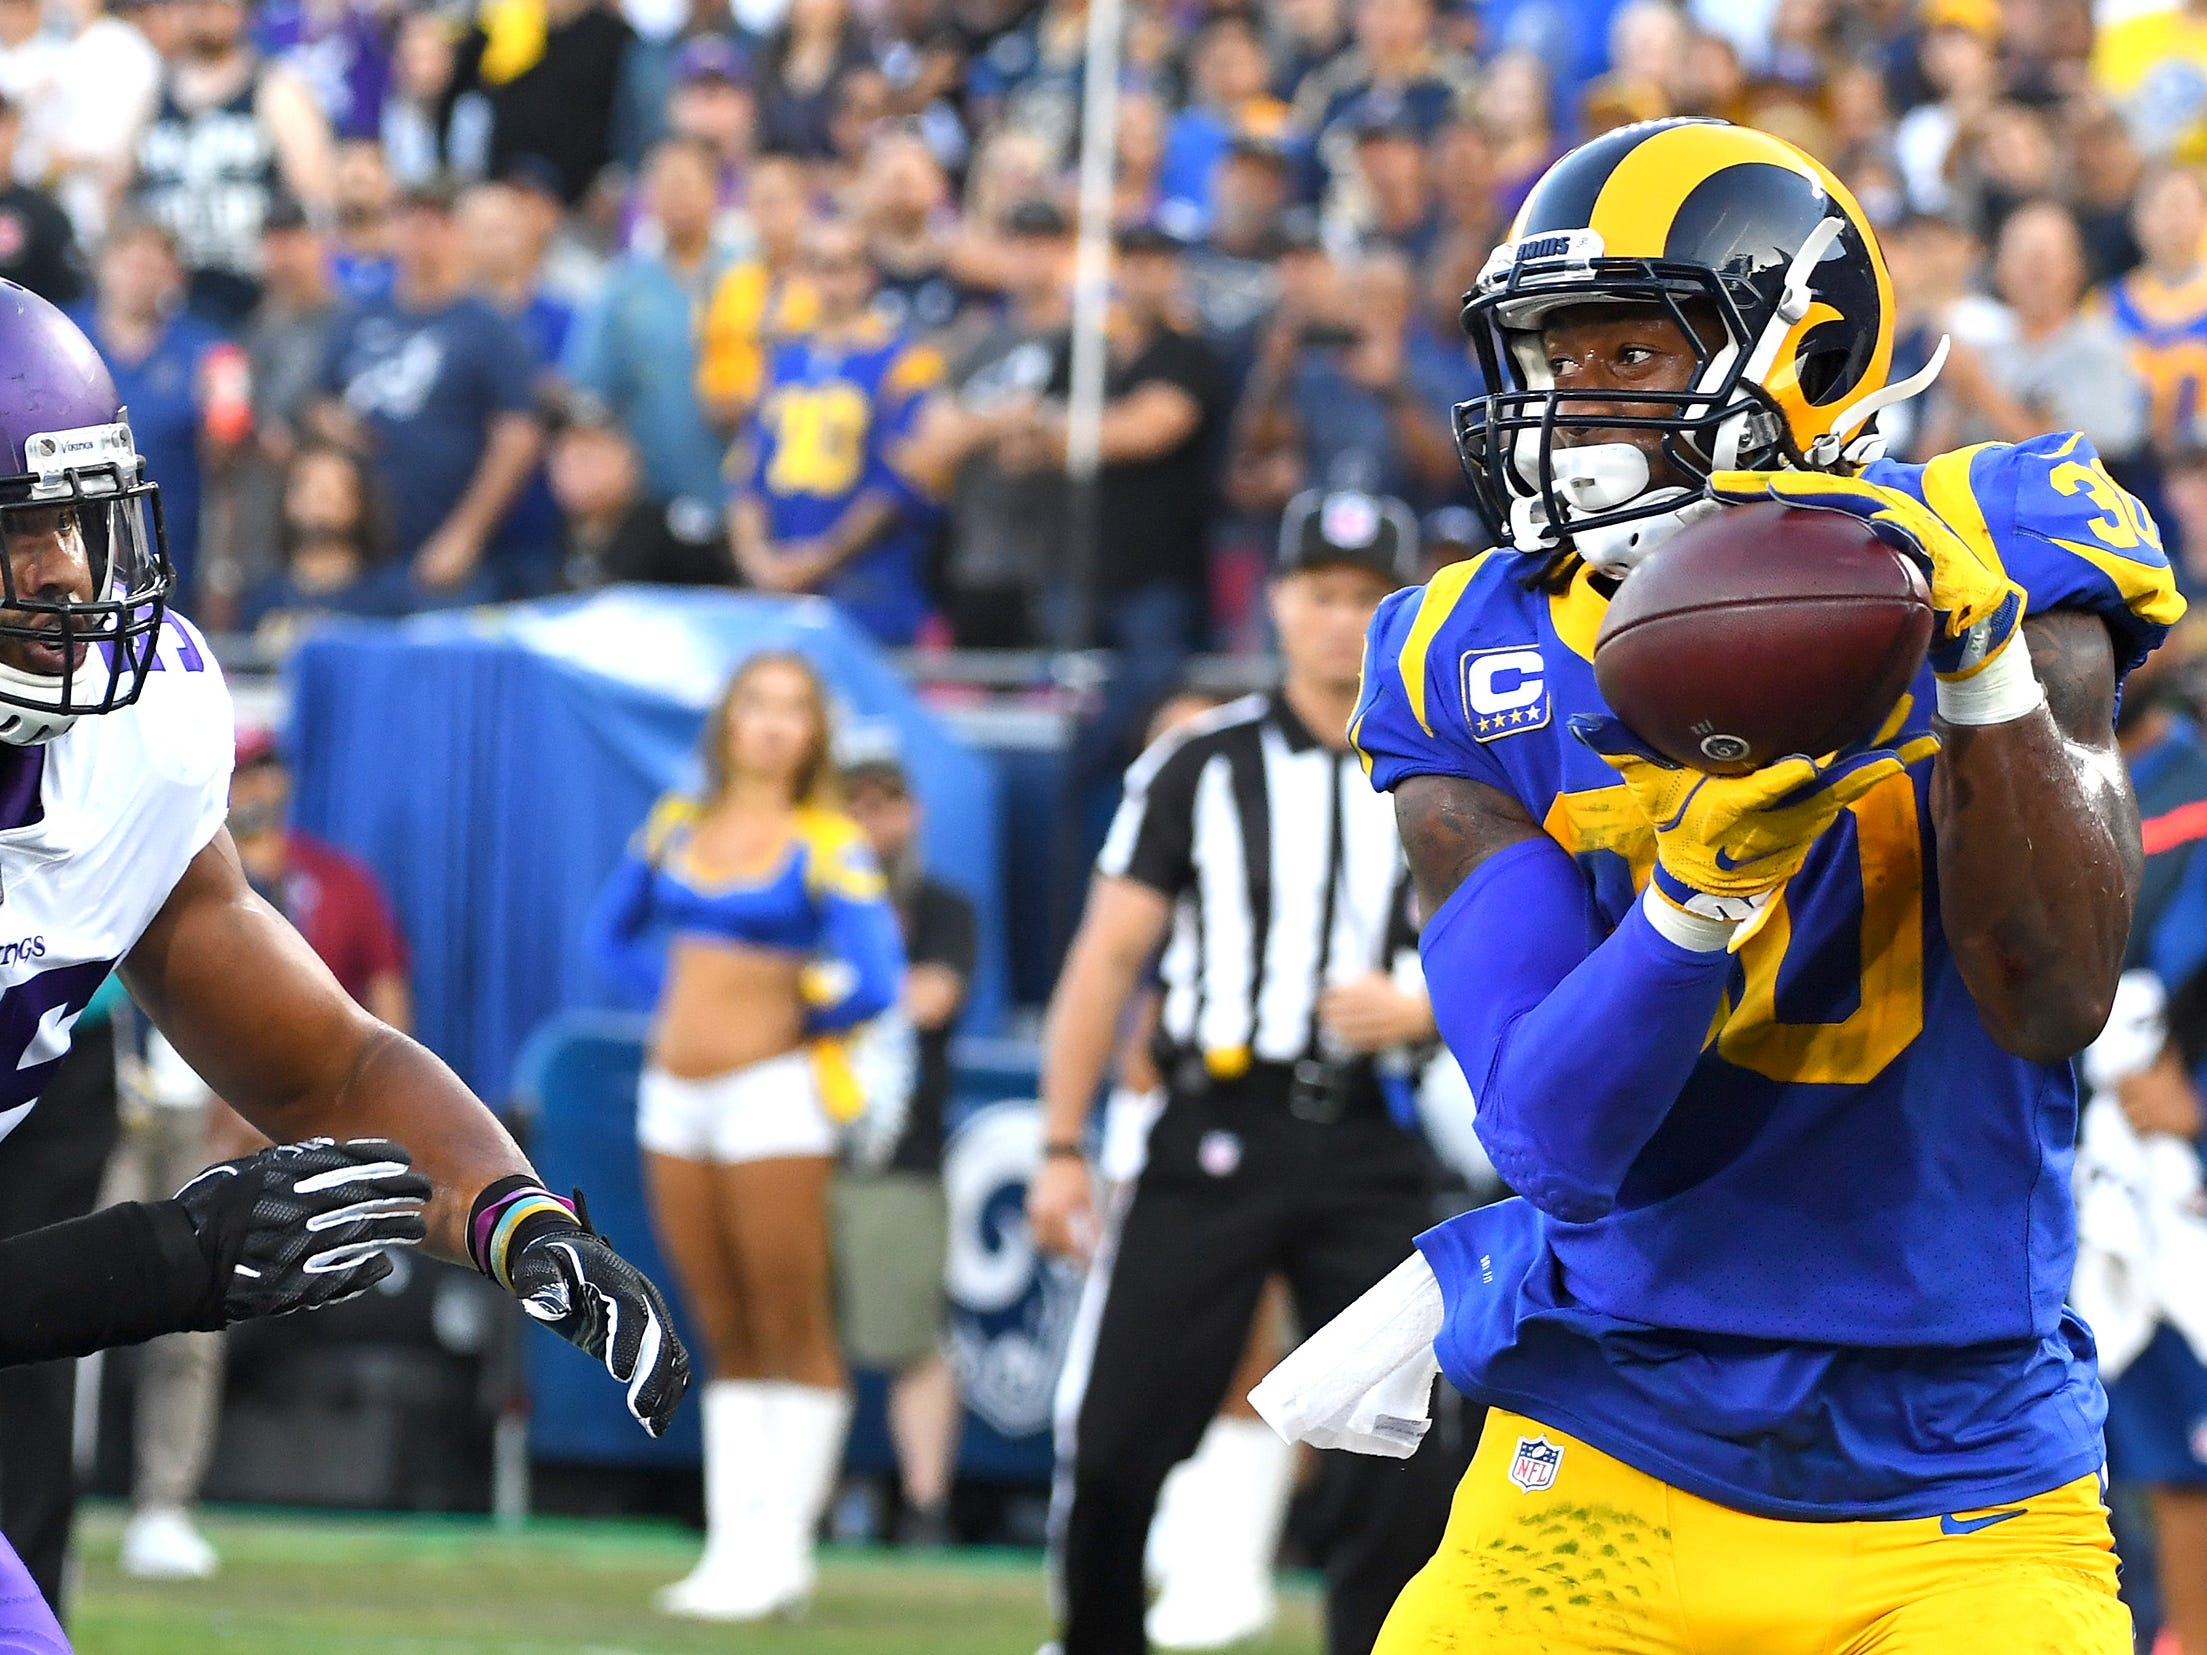 Los Angeles Rams running back Todd Gurley catches the ball in front of Minnesota Vikings linebacker Anthony Barr (55) to score a touchdown in the first quarter of the game at the Los Angeles Memorial Coliseum.